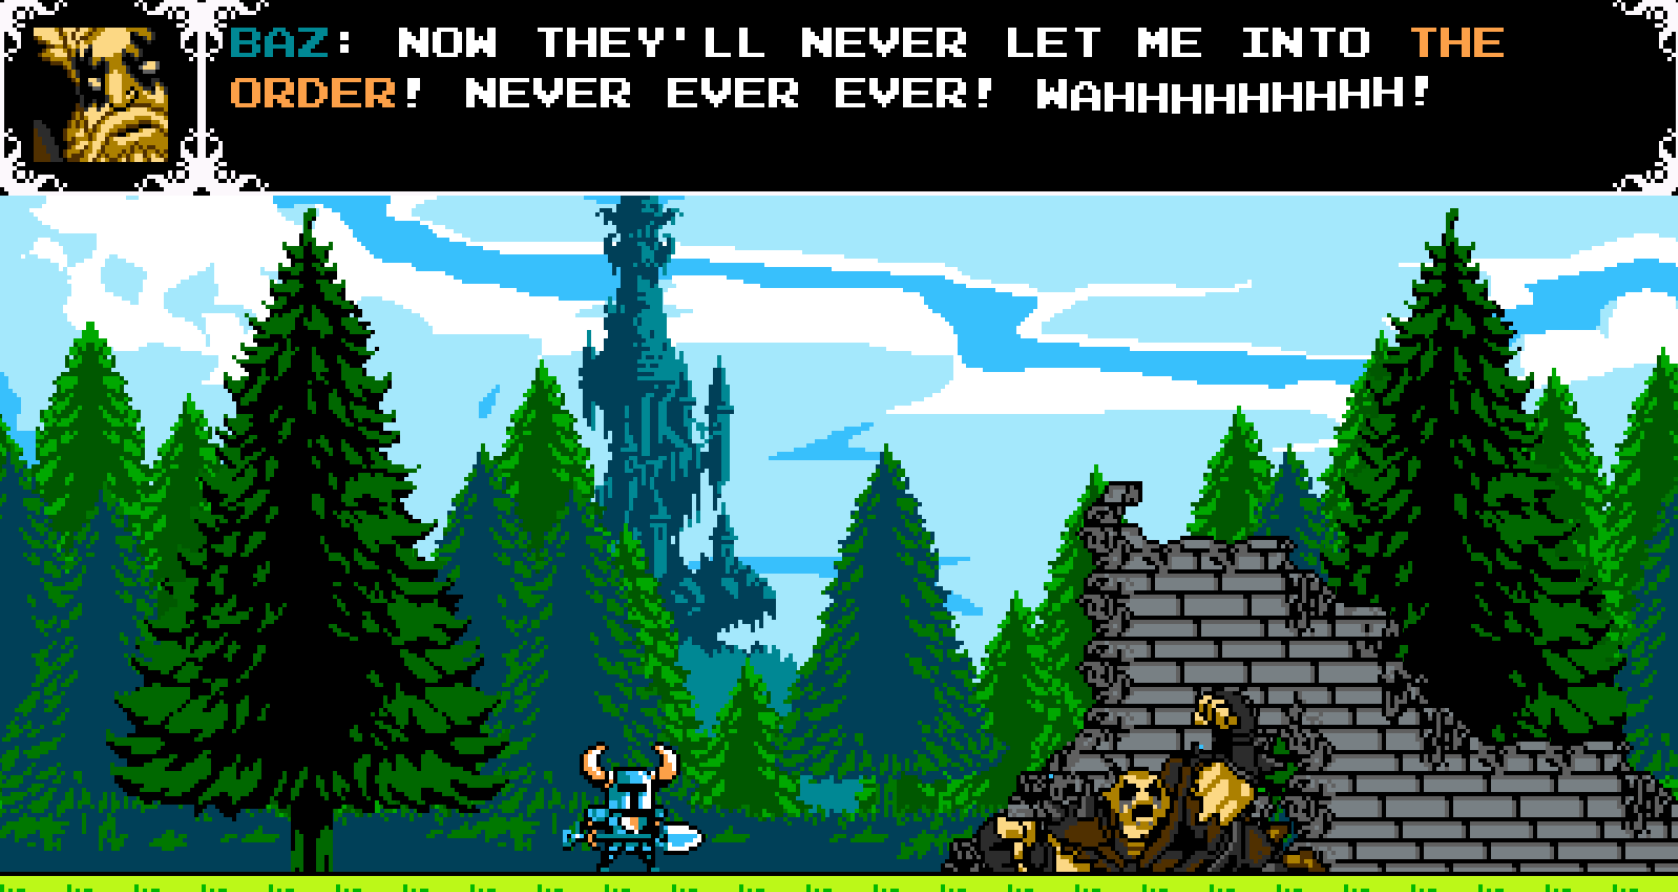 Shovel Knight's battle against Baz, one of the Wandering Travellers, might remind the player of Simon's Quest - Castlevania 2.